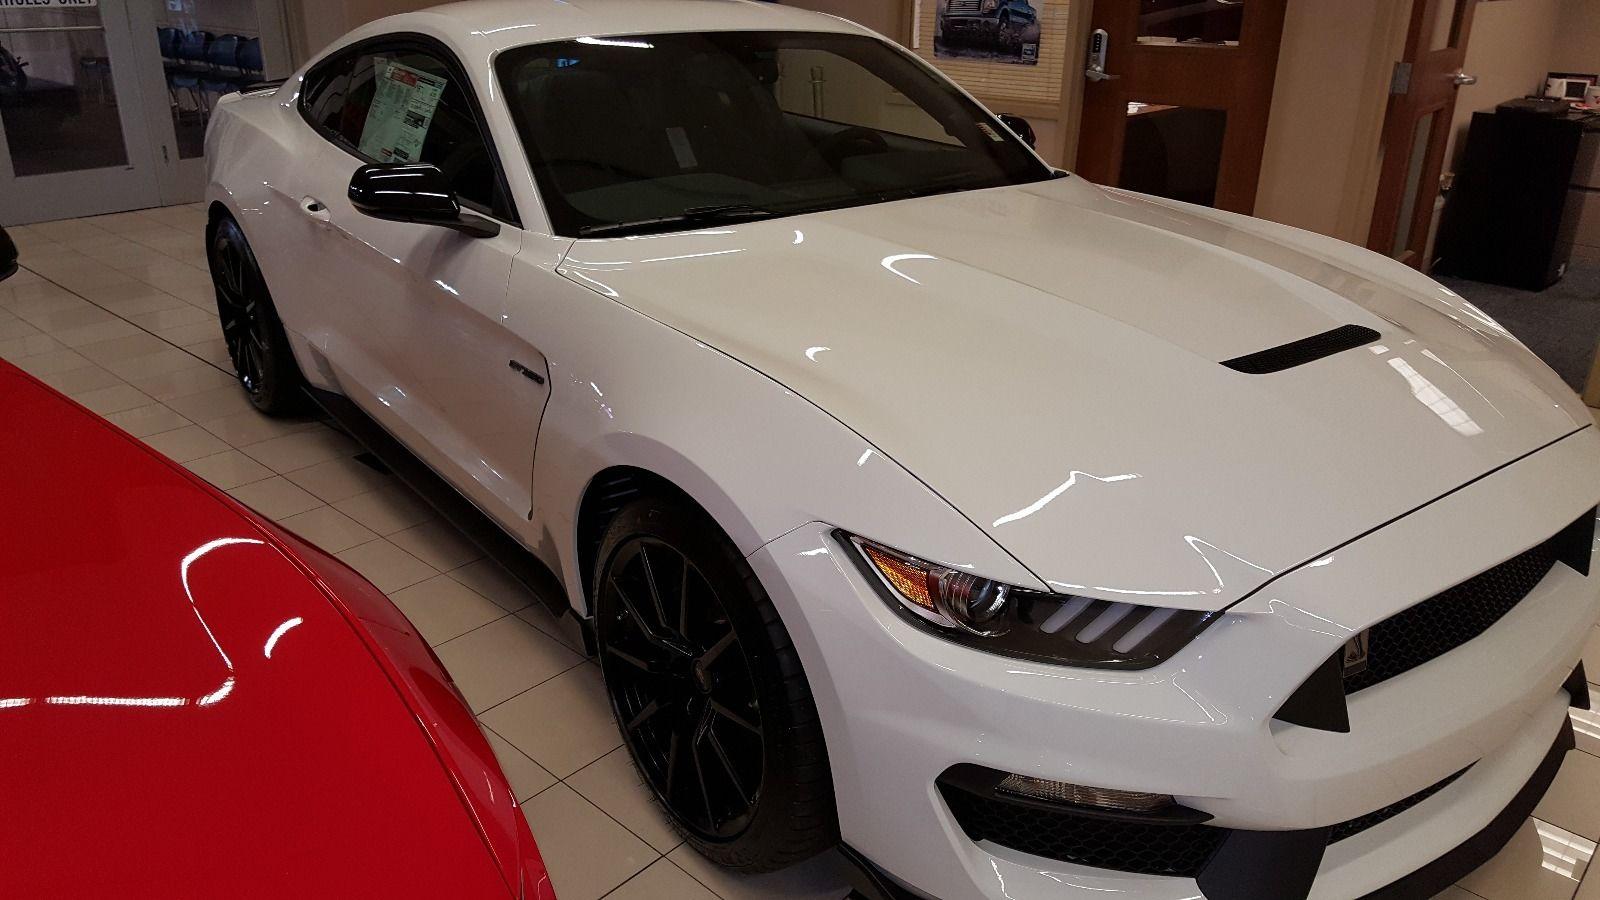 Gt350 For Sale >> 2016 Ford Mustang GT350 - $67,459.99